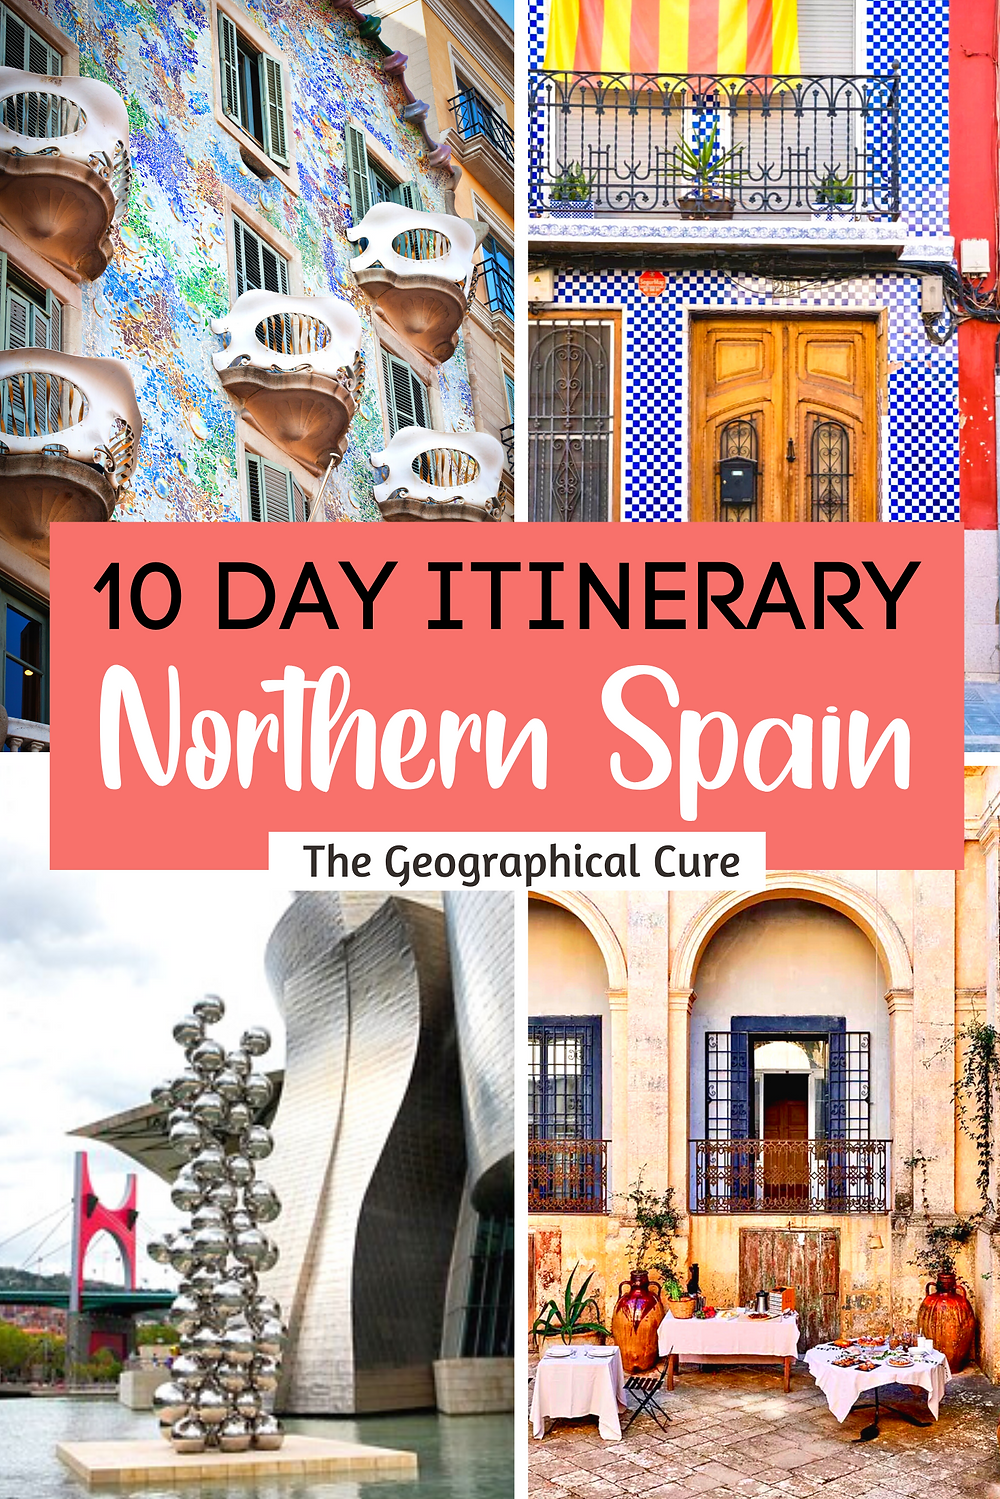 10 Day Itinerary for Northern Spain